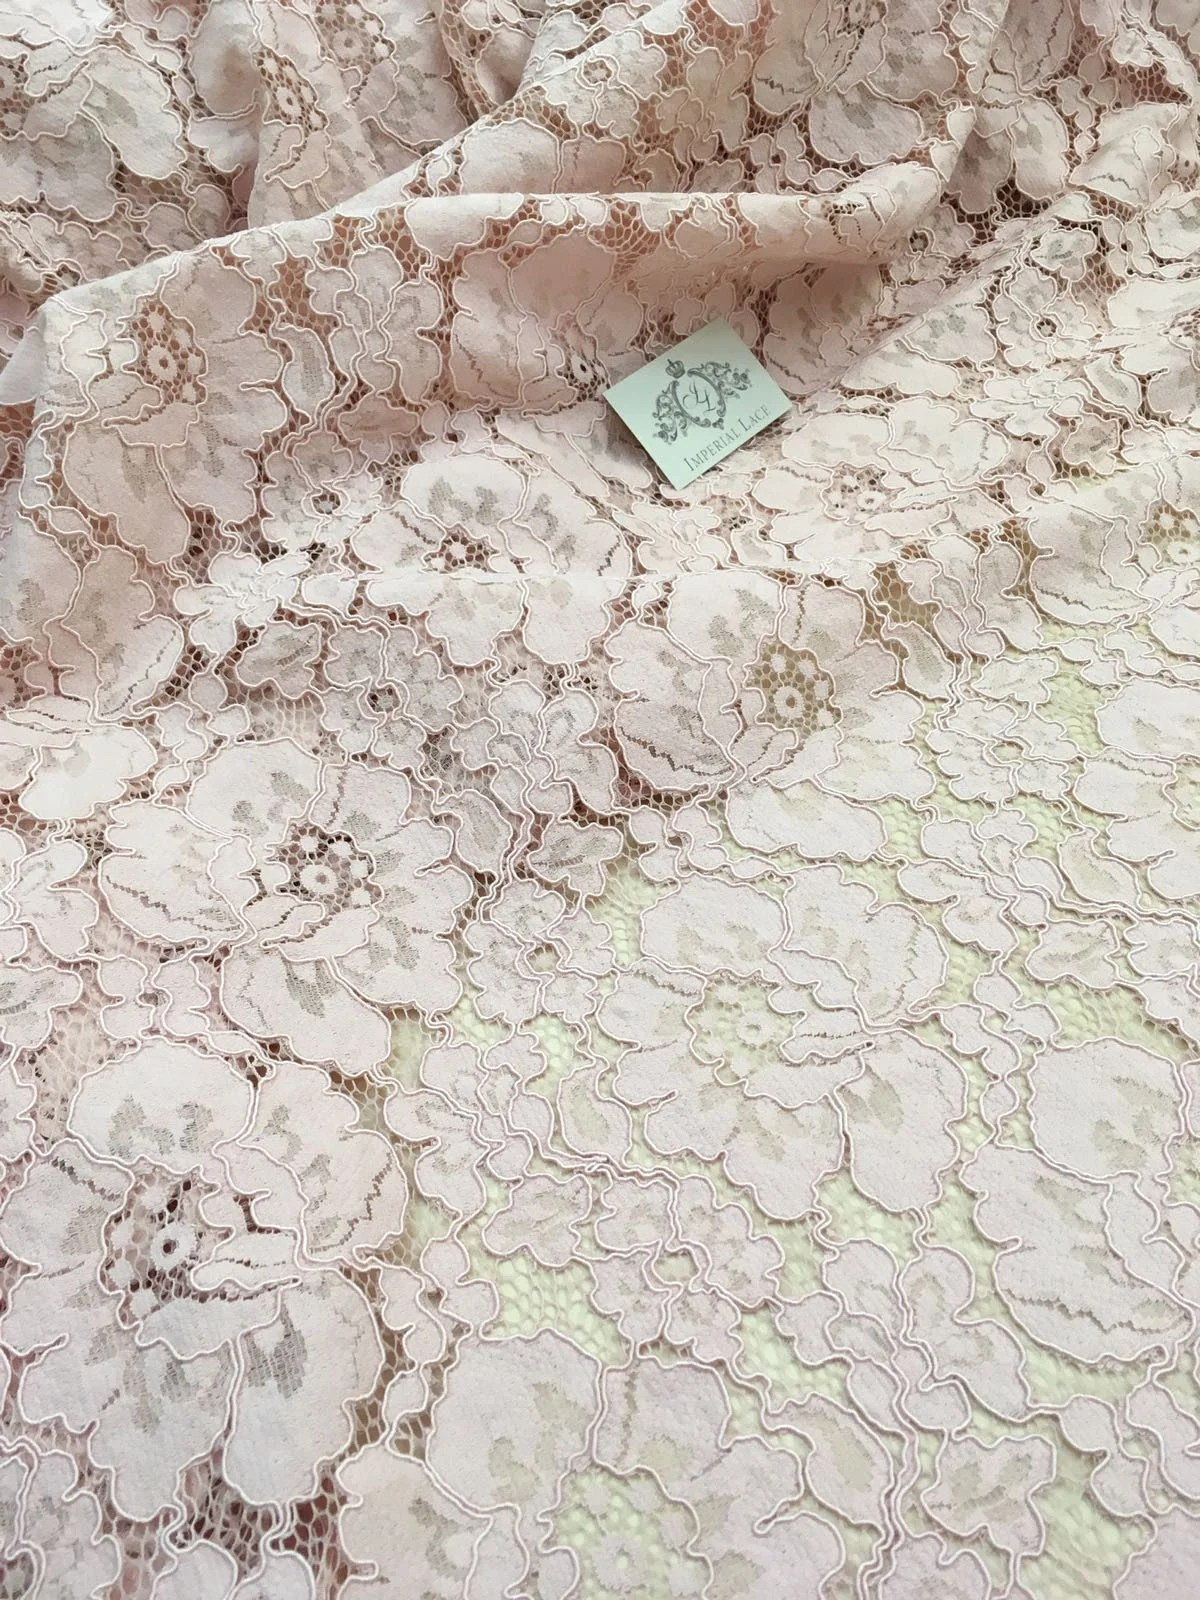 Stoff Spitze Light Pink Lace Fabric French Lace Lace Spitze Stoff Salmon Pink Alencon Lace Fabric Spitzen Stoff Pink Lace Fabric K00582